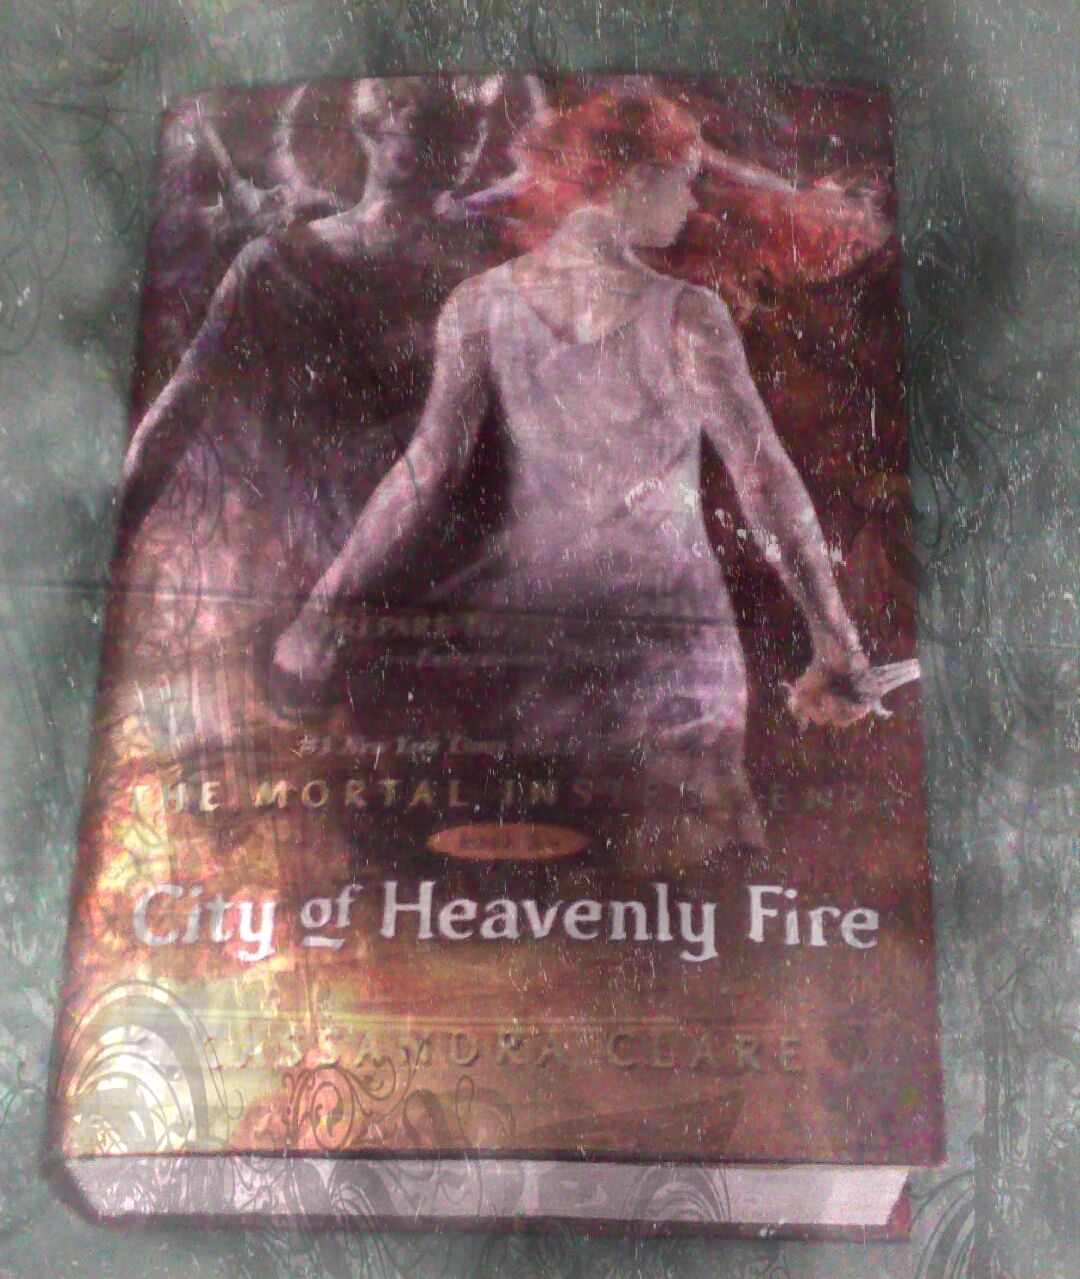 a review of the book the fire of heaven Find helpful customer reviews and review ratings for blood of heaven (fire of heaven trilogy book 1) at amazoncom read honest and unbiased product reviews from our users.